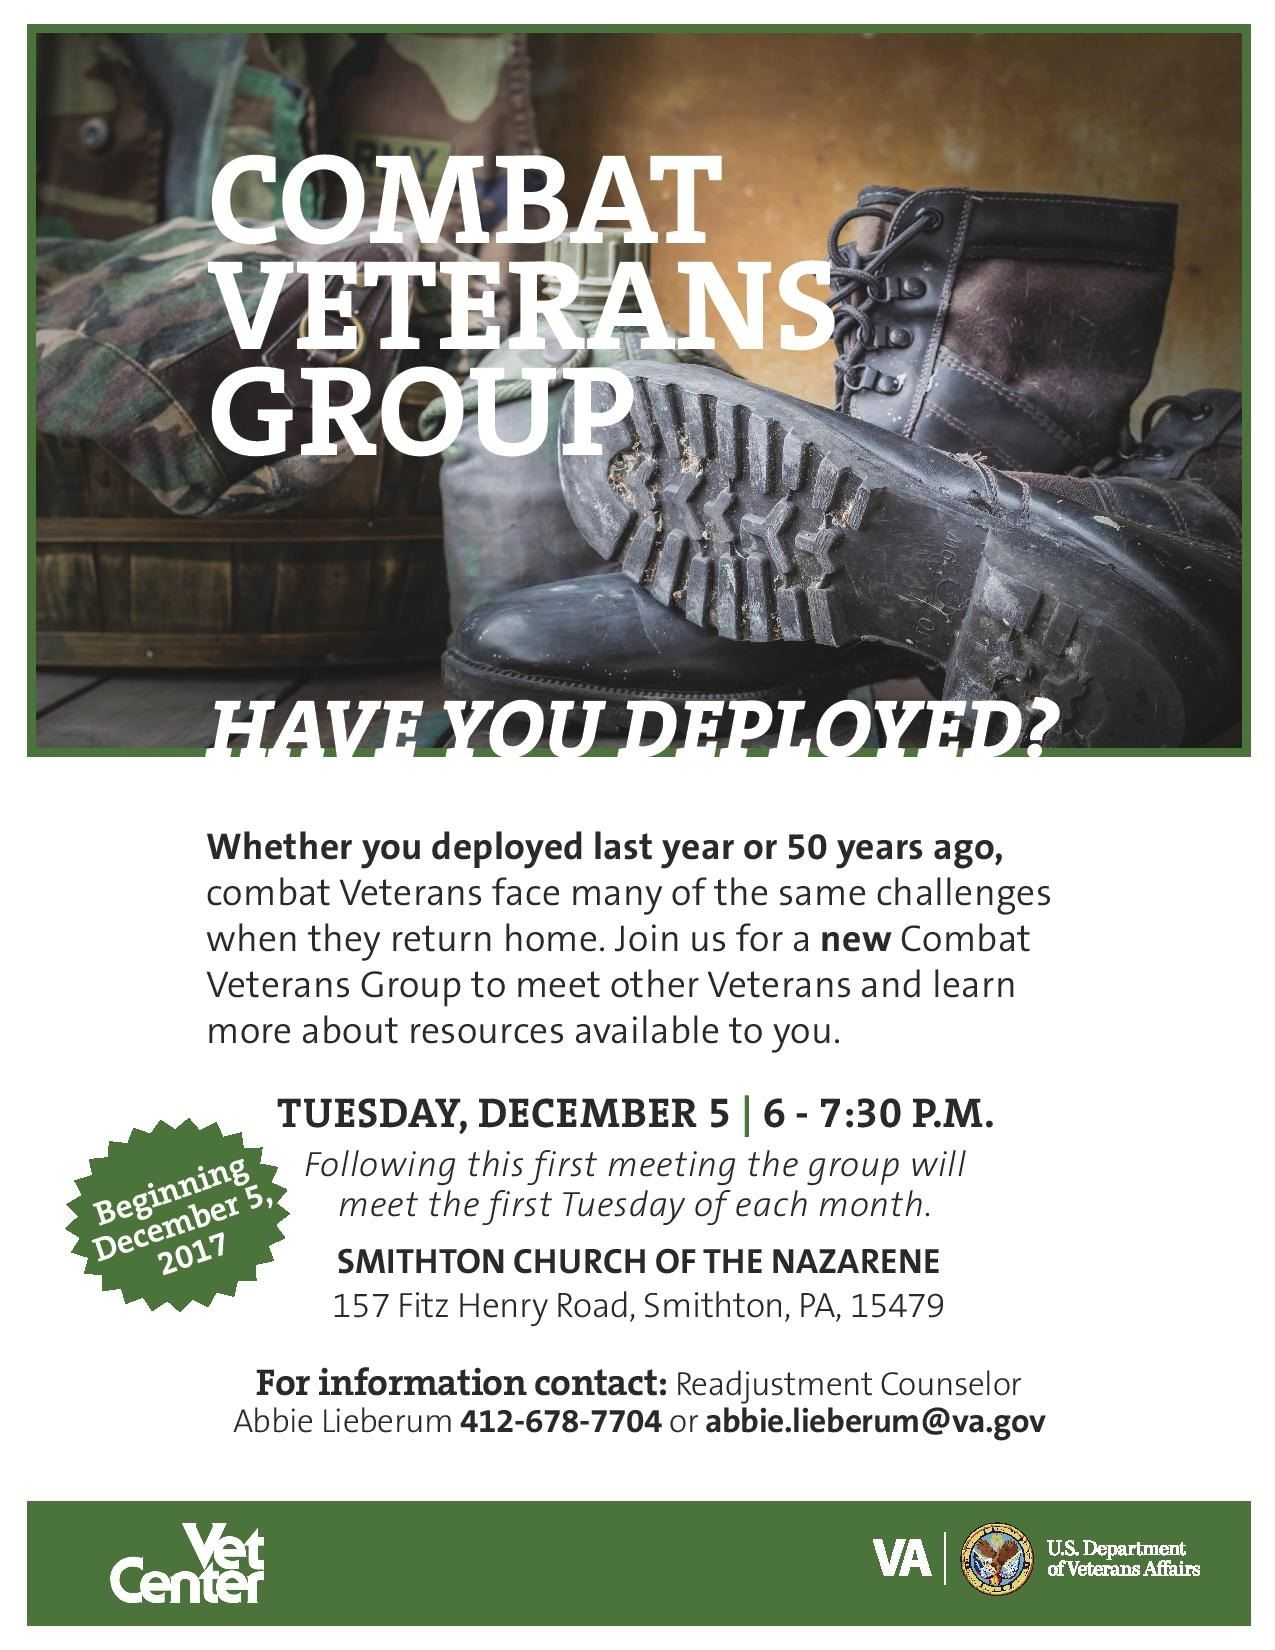 CombatVeteran_SupportGroup_VetCenter_flyer